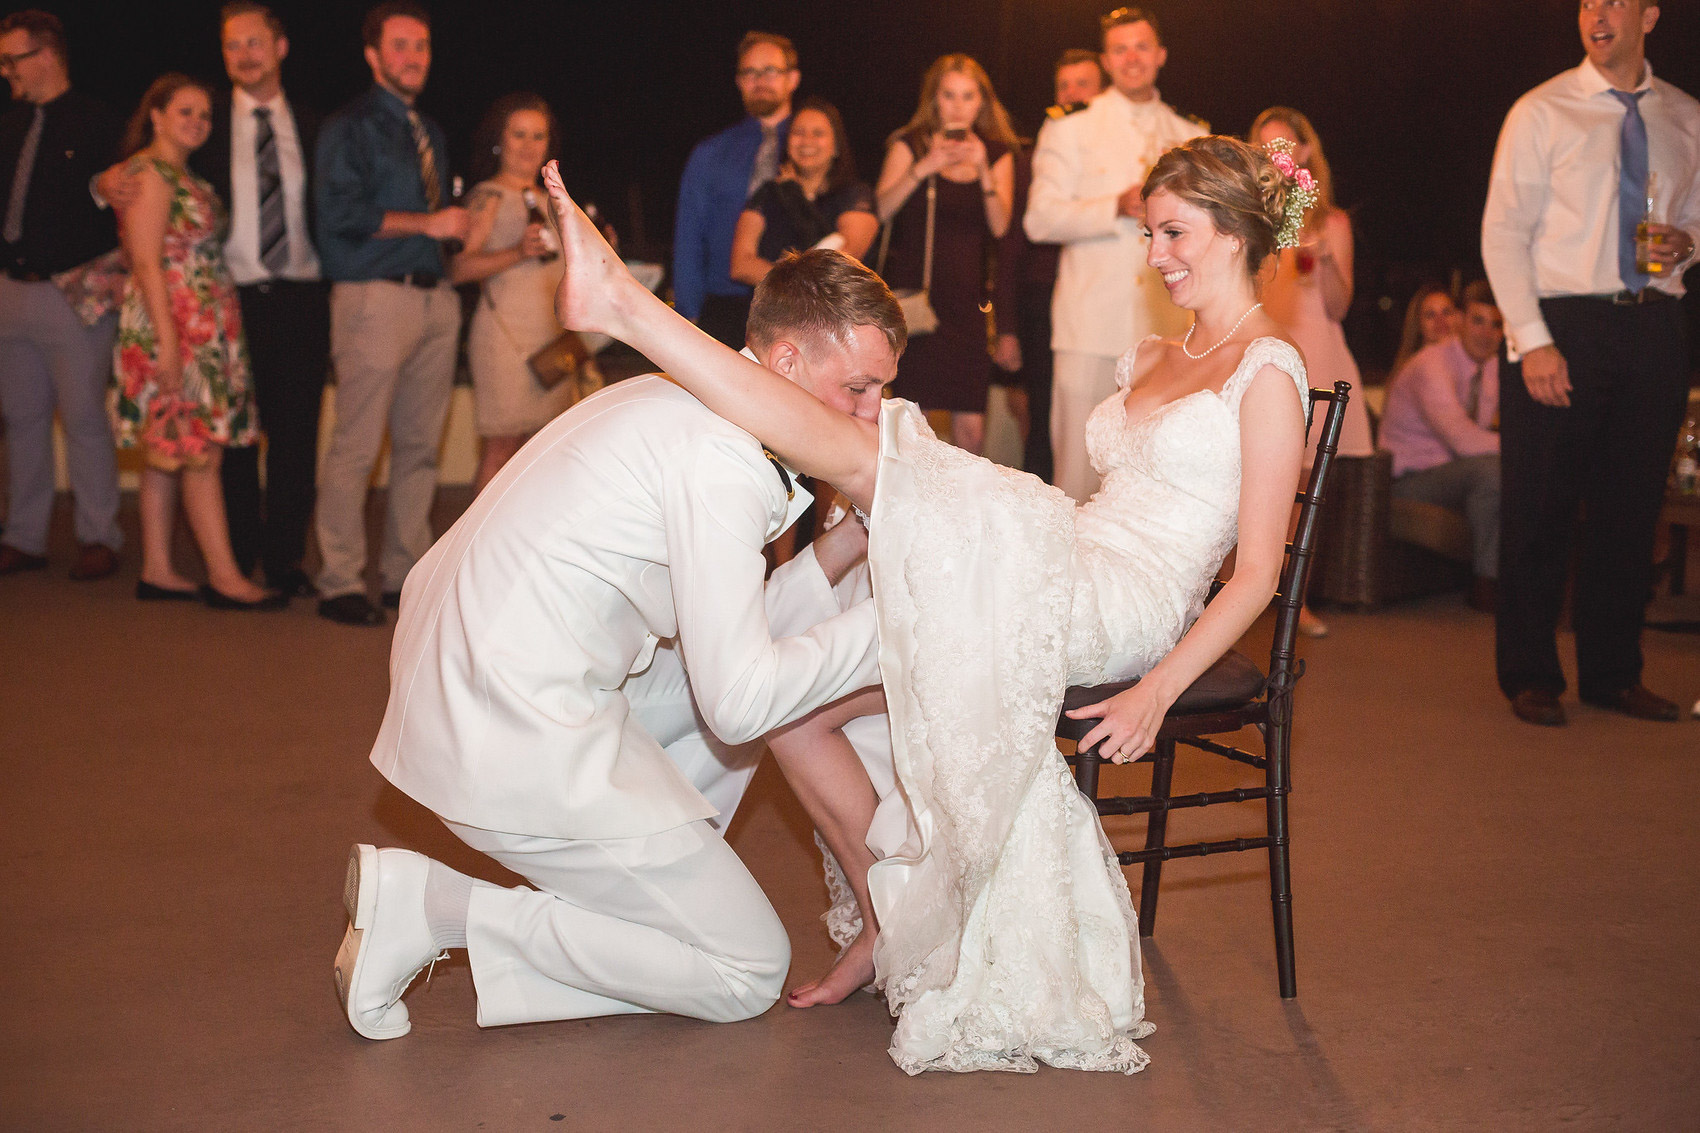 Adam-Szrmack-Bowing-the-white-room-st-augustine-wedding-photographer-127.jpg